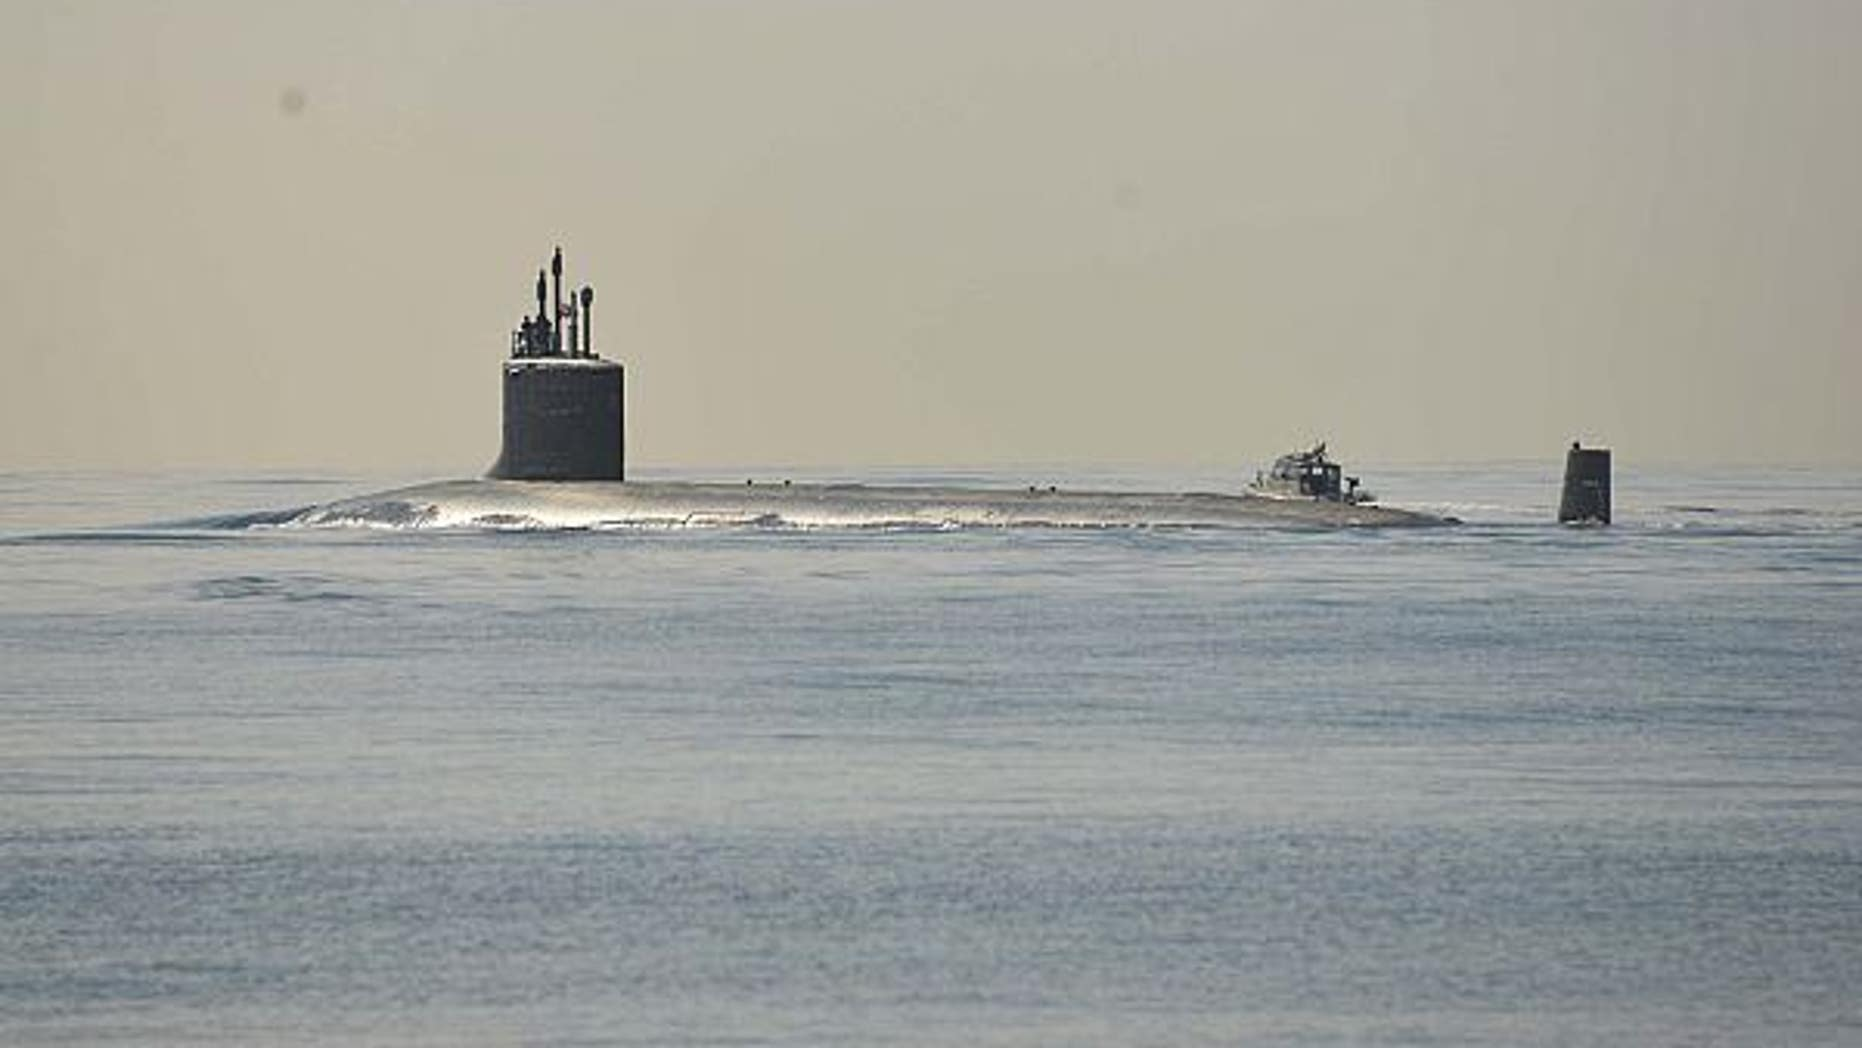 150113-N-DB801-066 PEARL HARBOR (Jan. 13, 2015) The Virginia-class attack submarine USS North Carolina (SSN 777) is underway conducting routine operations. (U.S. Navy photo by Mass Communication Specialist 1st Class Steven Khor/Released)